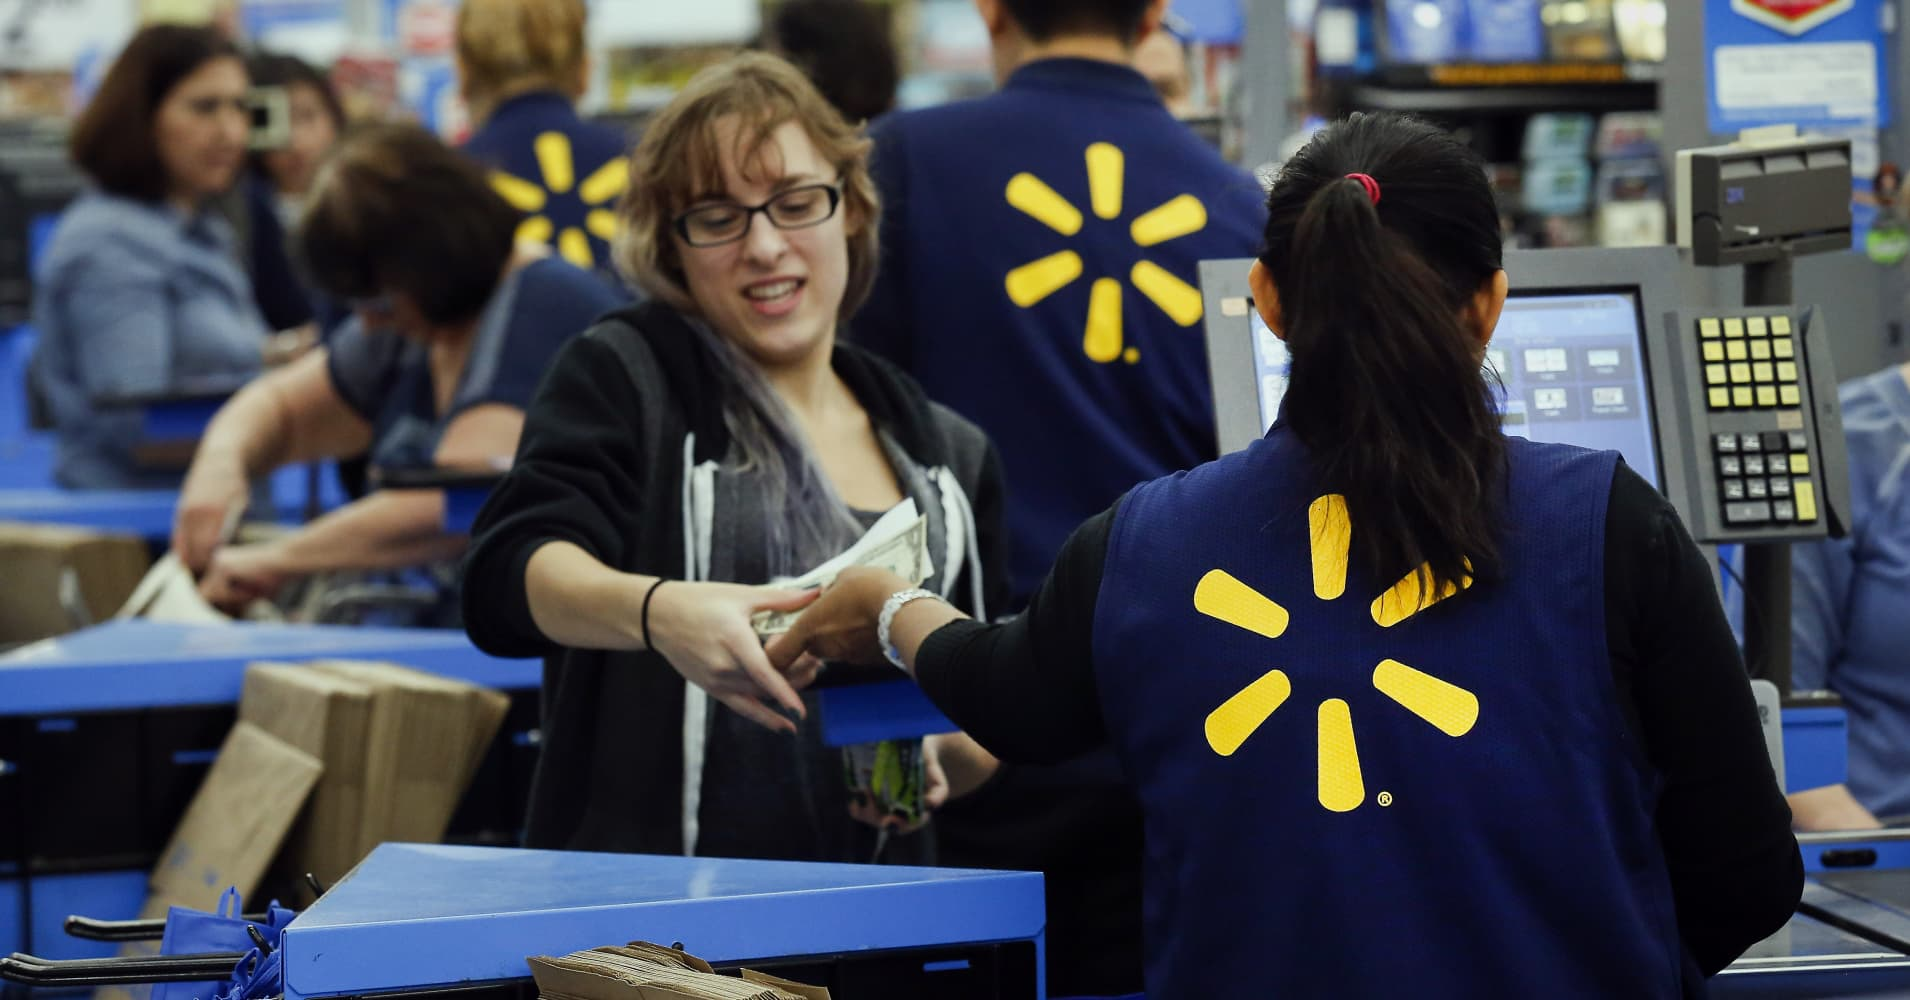 Walmart to raise its starting wage to $11, give some employees bonuses following tax bill passage